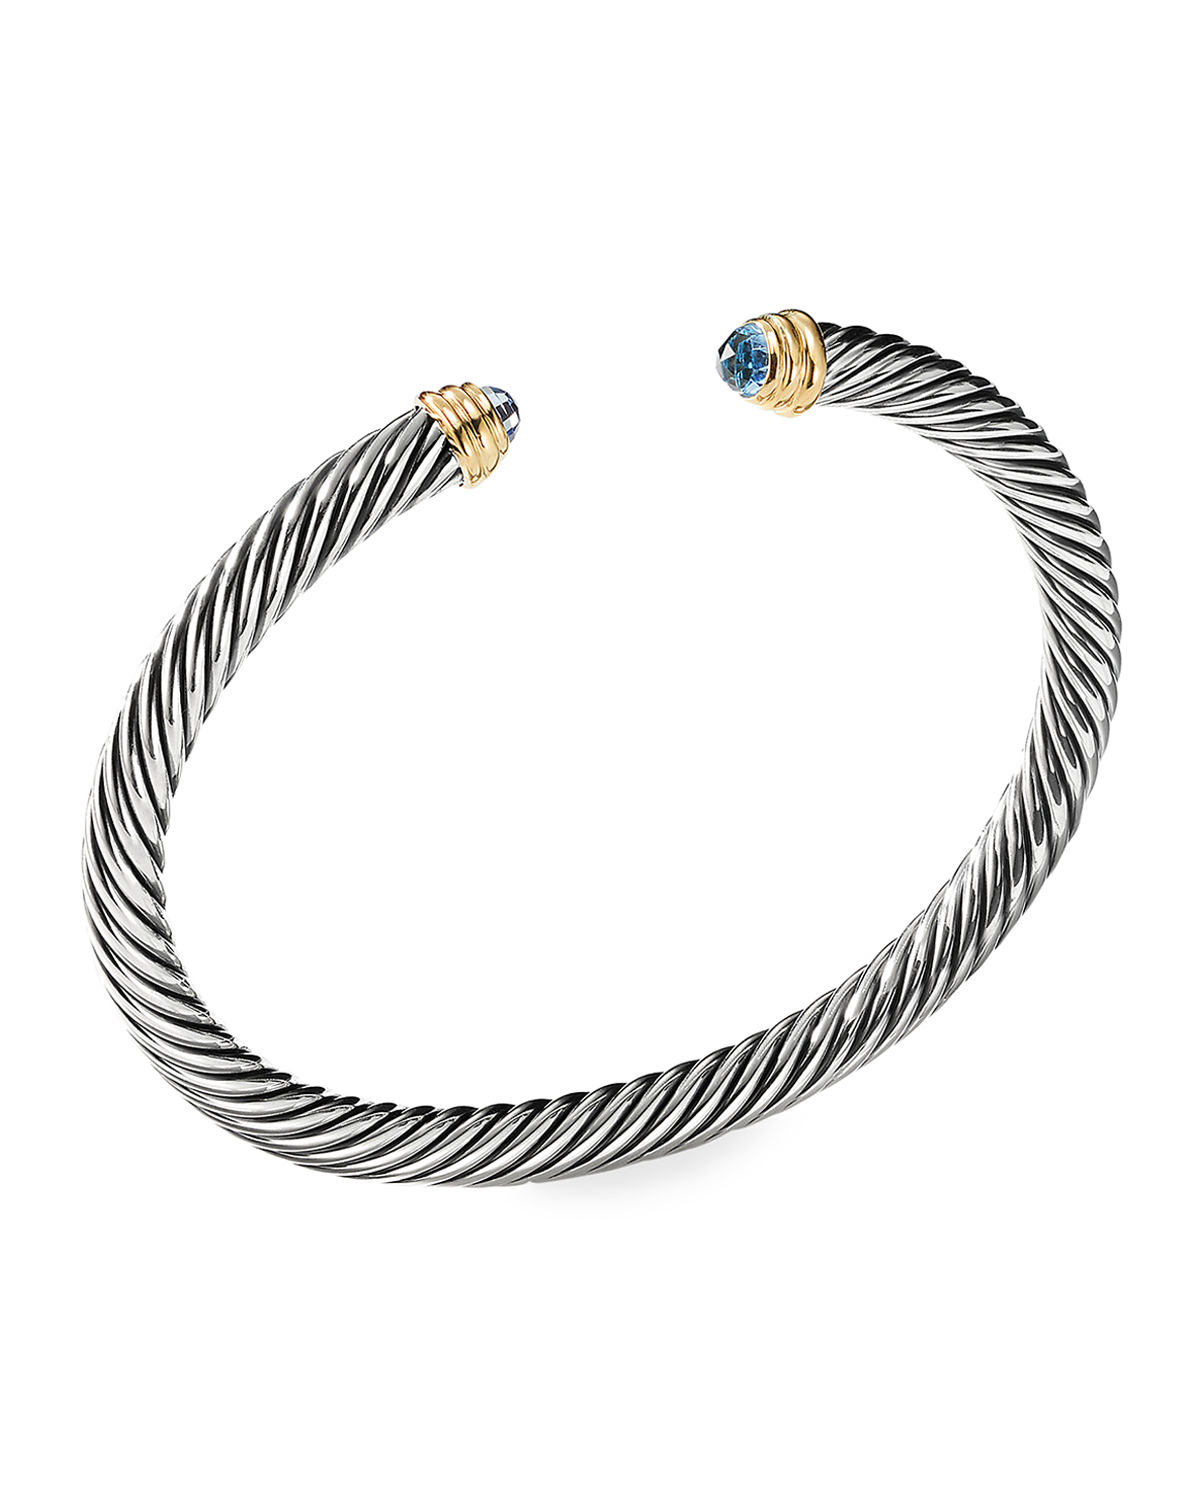 Cable Classics Bracelet with Semiprecious Stones & 14K Gold